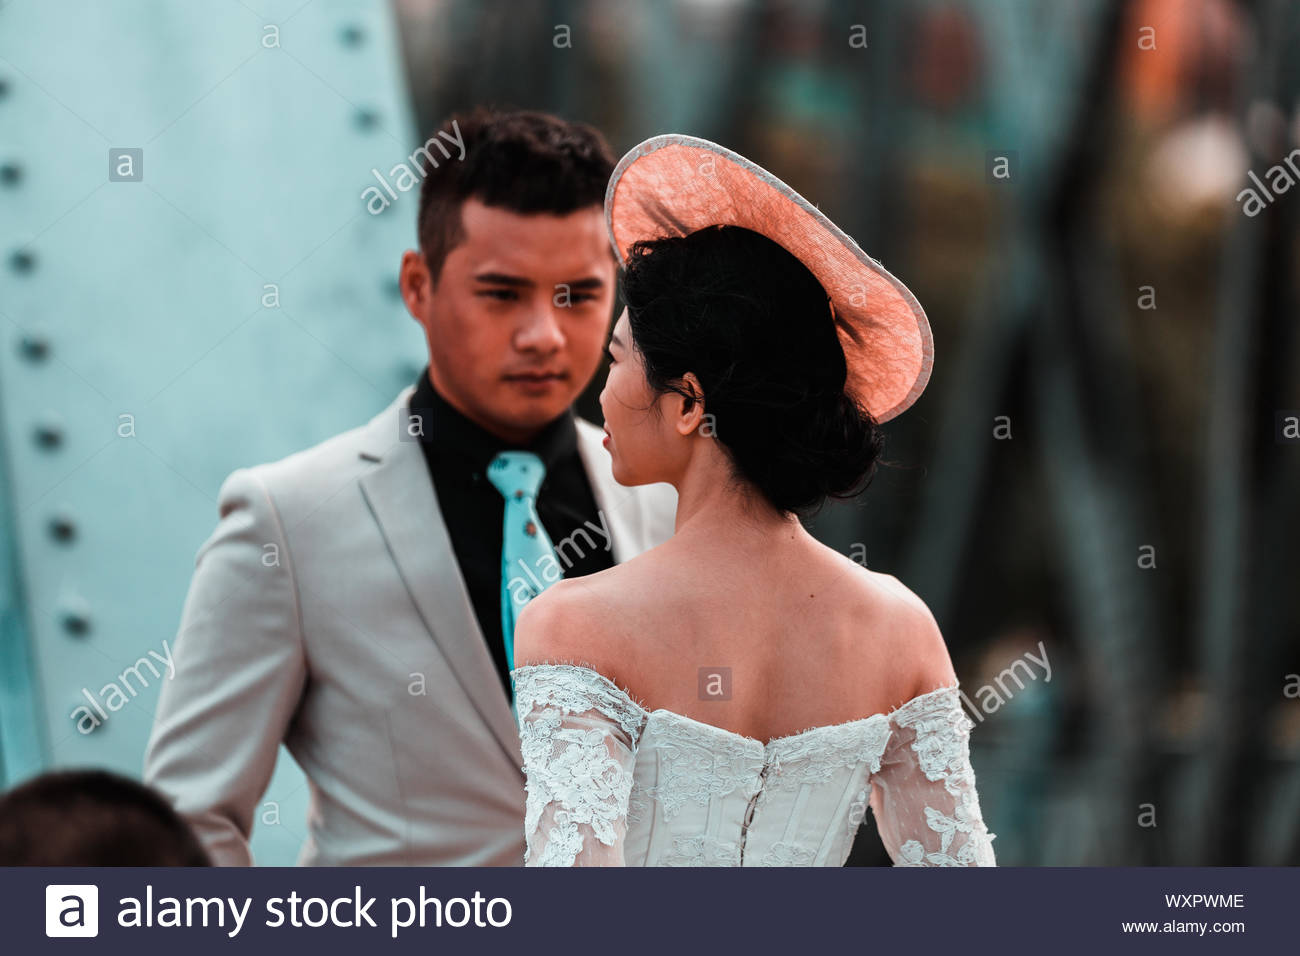 wedding in shanghai china at the bund you will see many brides and grooms in traditional wedding suite on the promenade celebrating a photoshoot WXPWME